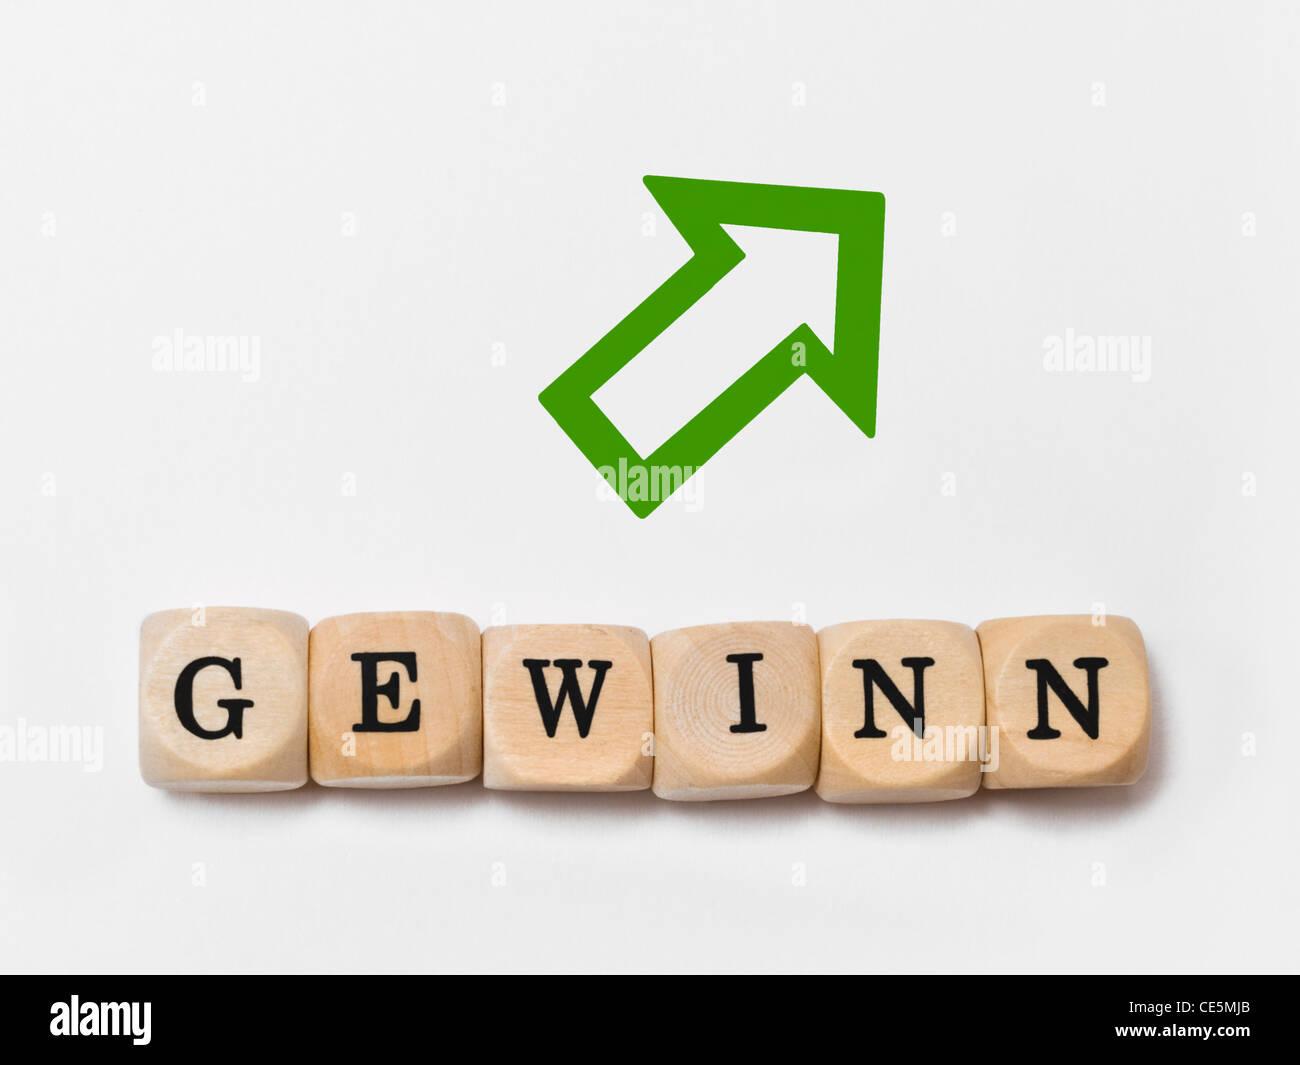 a green arrow upside, alongside are cubes which form the word 'profit' in German - Stock Image